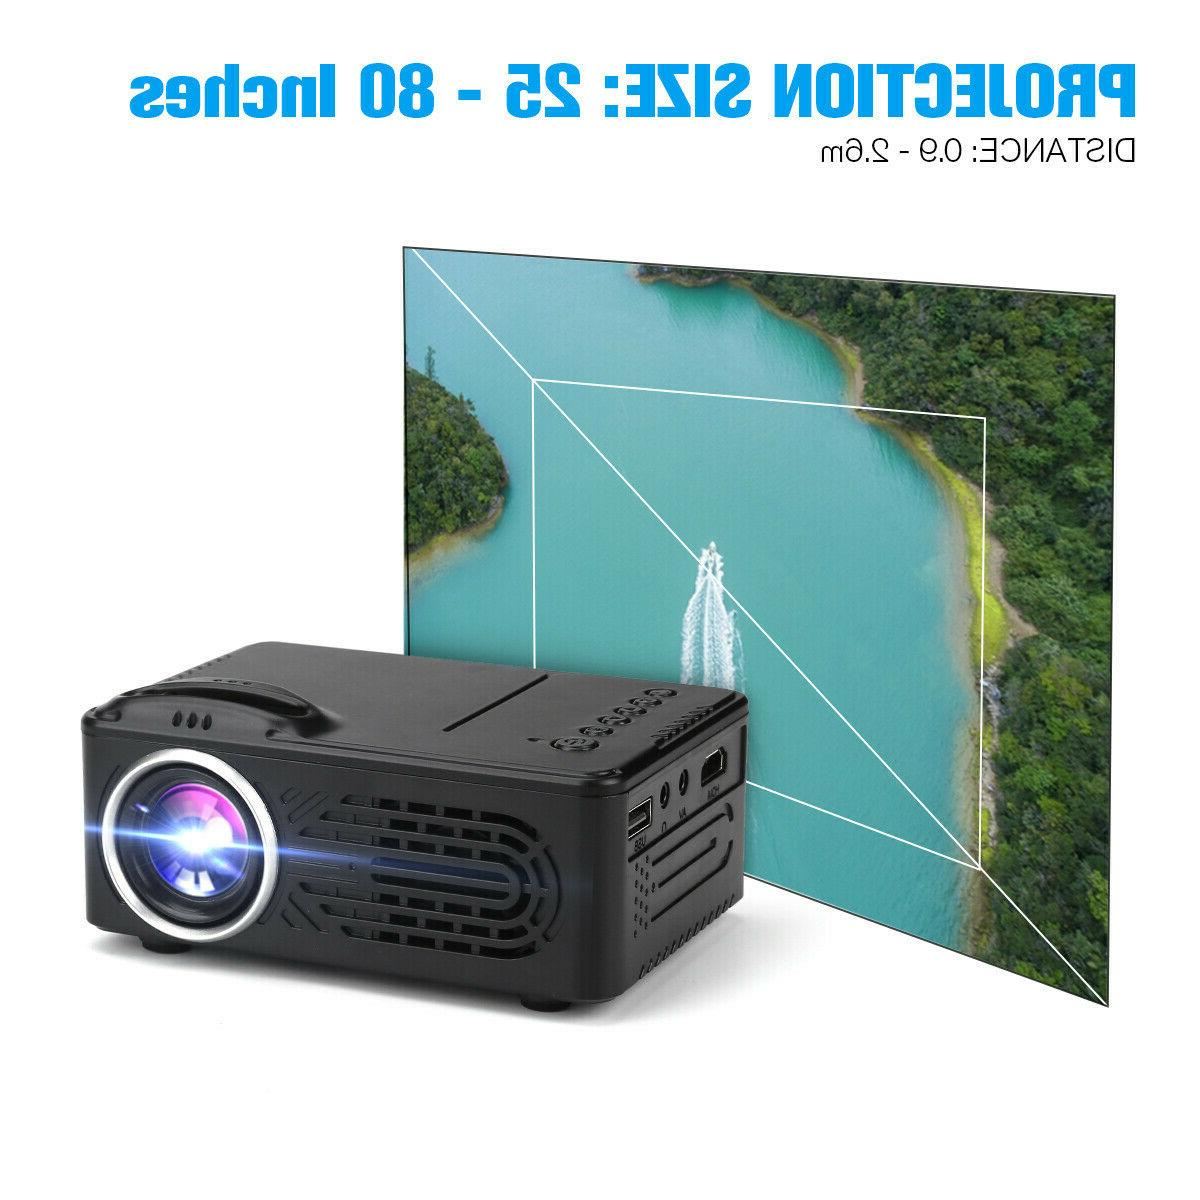 Portable Projector 1080P Theater Video Movie Game 3D HDMI USB